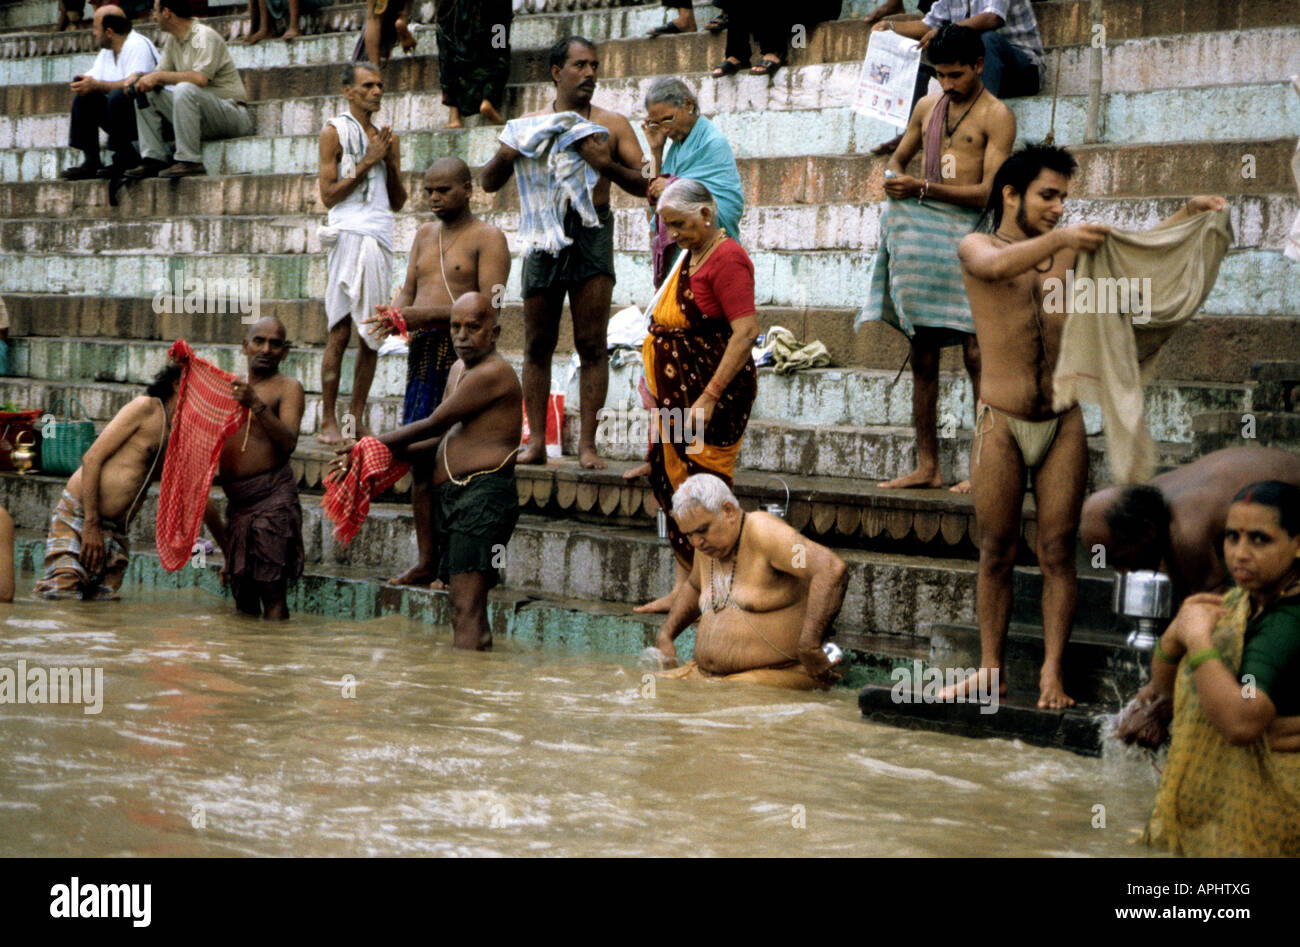 c95b32bdb01 Indian men and women bath in the holy Ganges river in Varanasi Stock ...